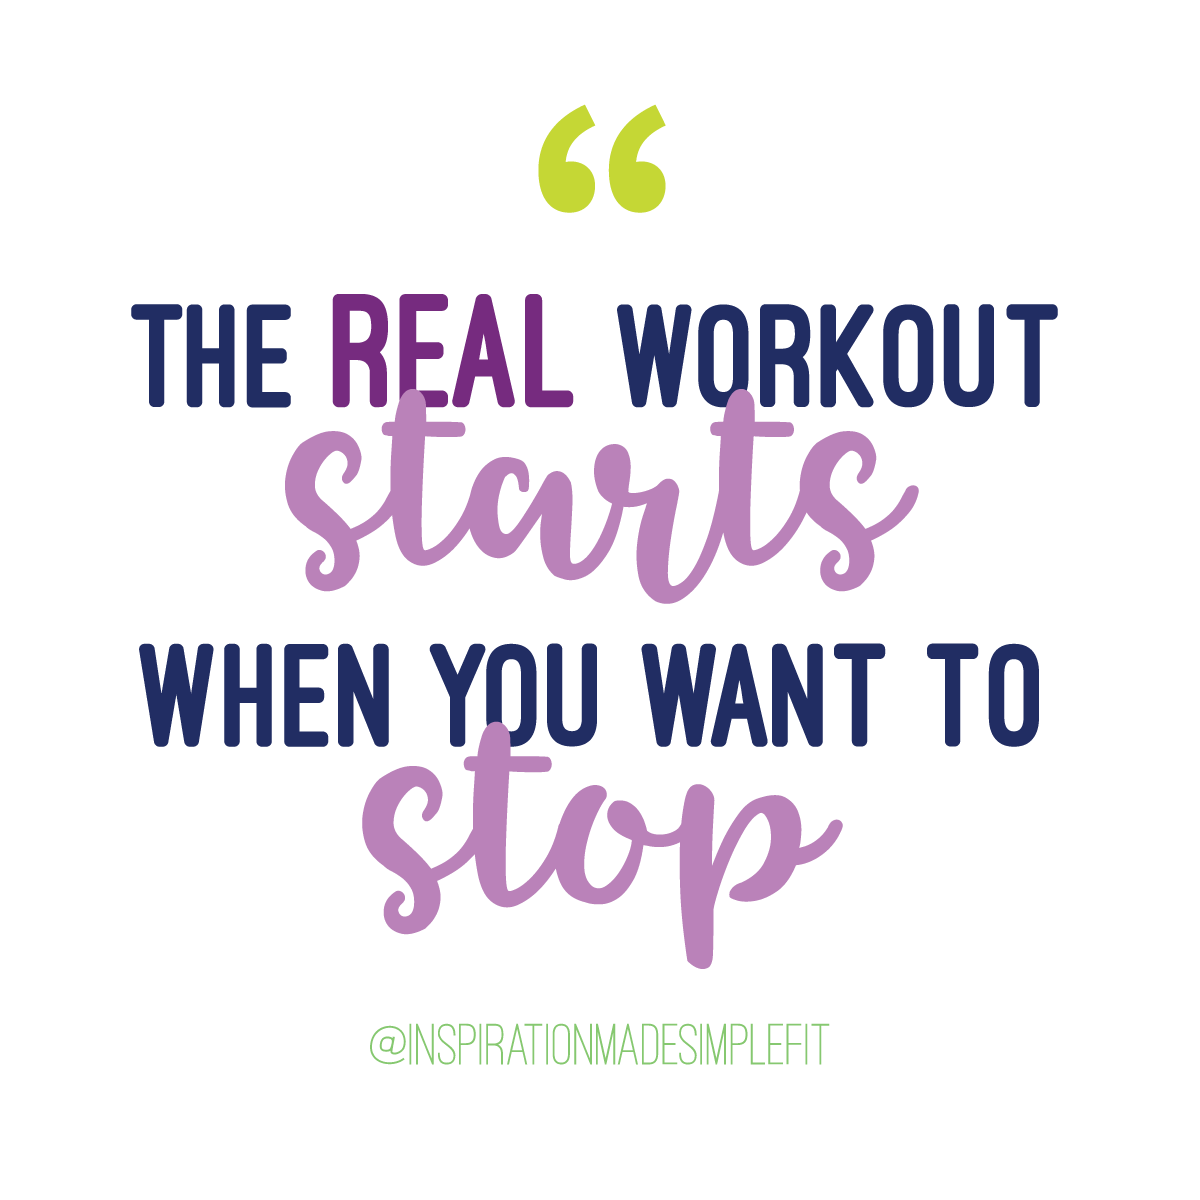 The real workout starts when you want to stop - Start your fitness jouney